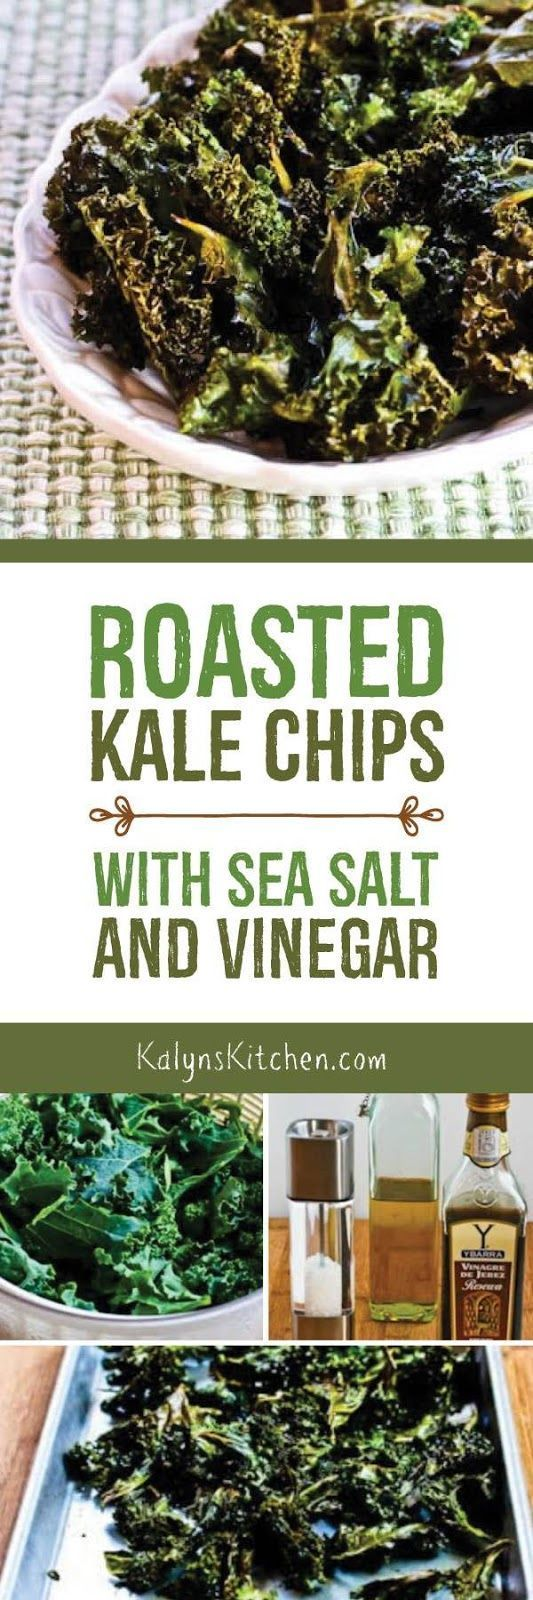 These Roasted Kale Chips with Sea Salt and Vinegar are a delicious way to eat your greens as a snack; I make them in the toaster oven when it's too hot to heat up the kitchen! These tasty kale chips are vegan, low-carb, gluten-free, South Beach Diet friendly, Paleo, and Whole 30. [found on http://KalynsKitchen.com]